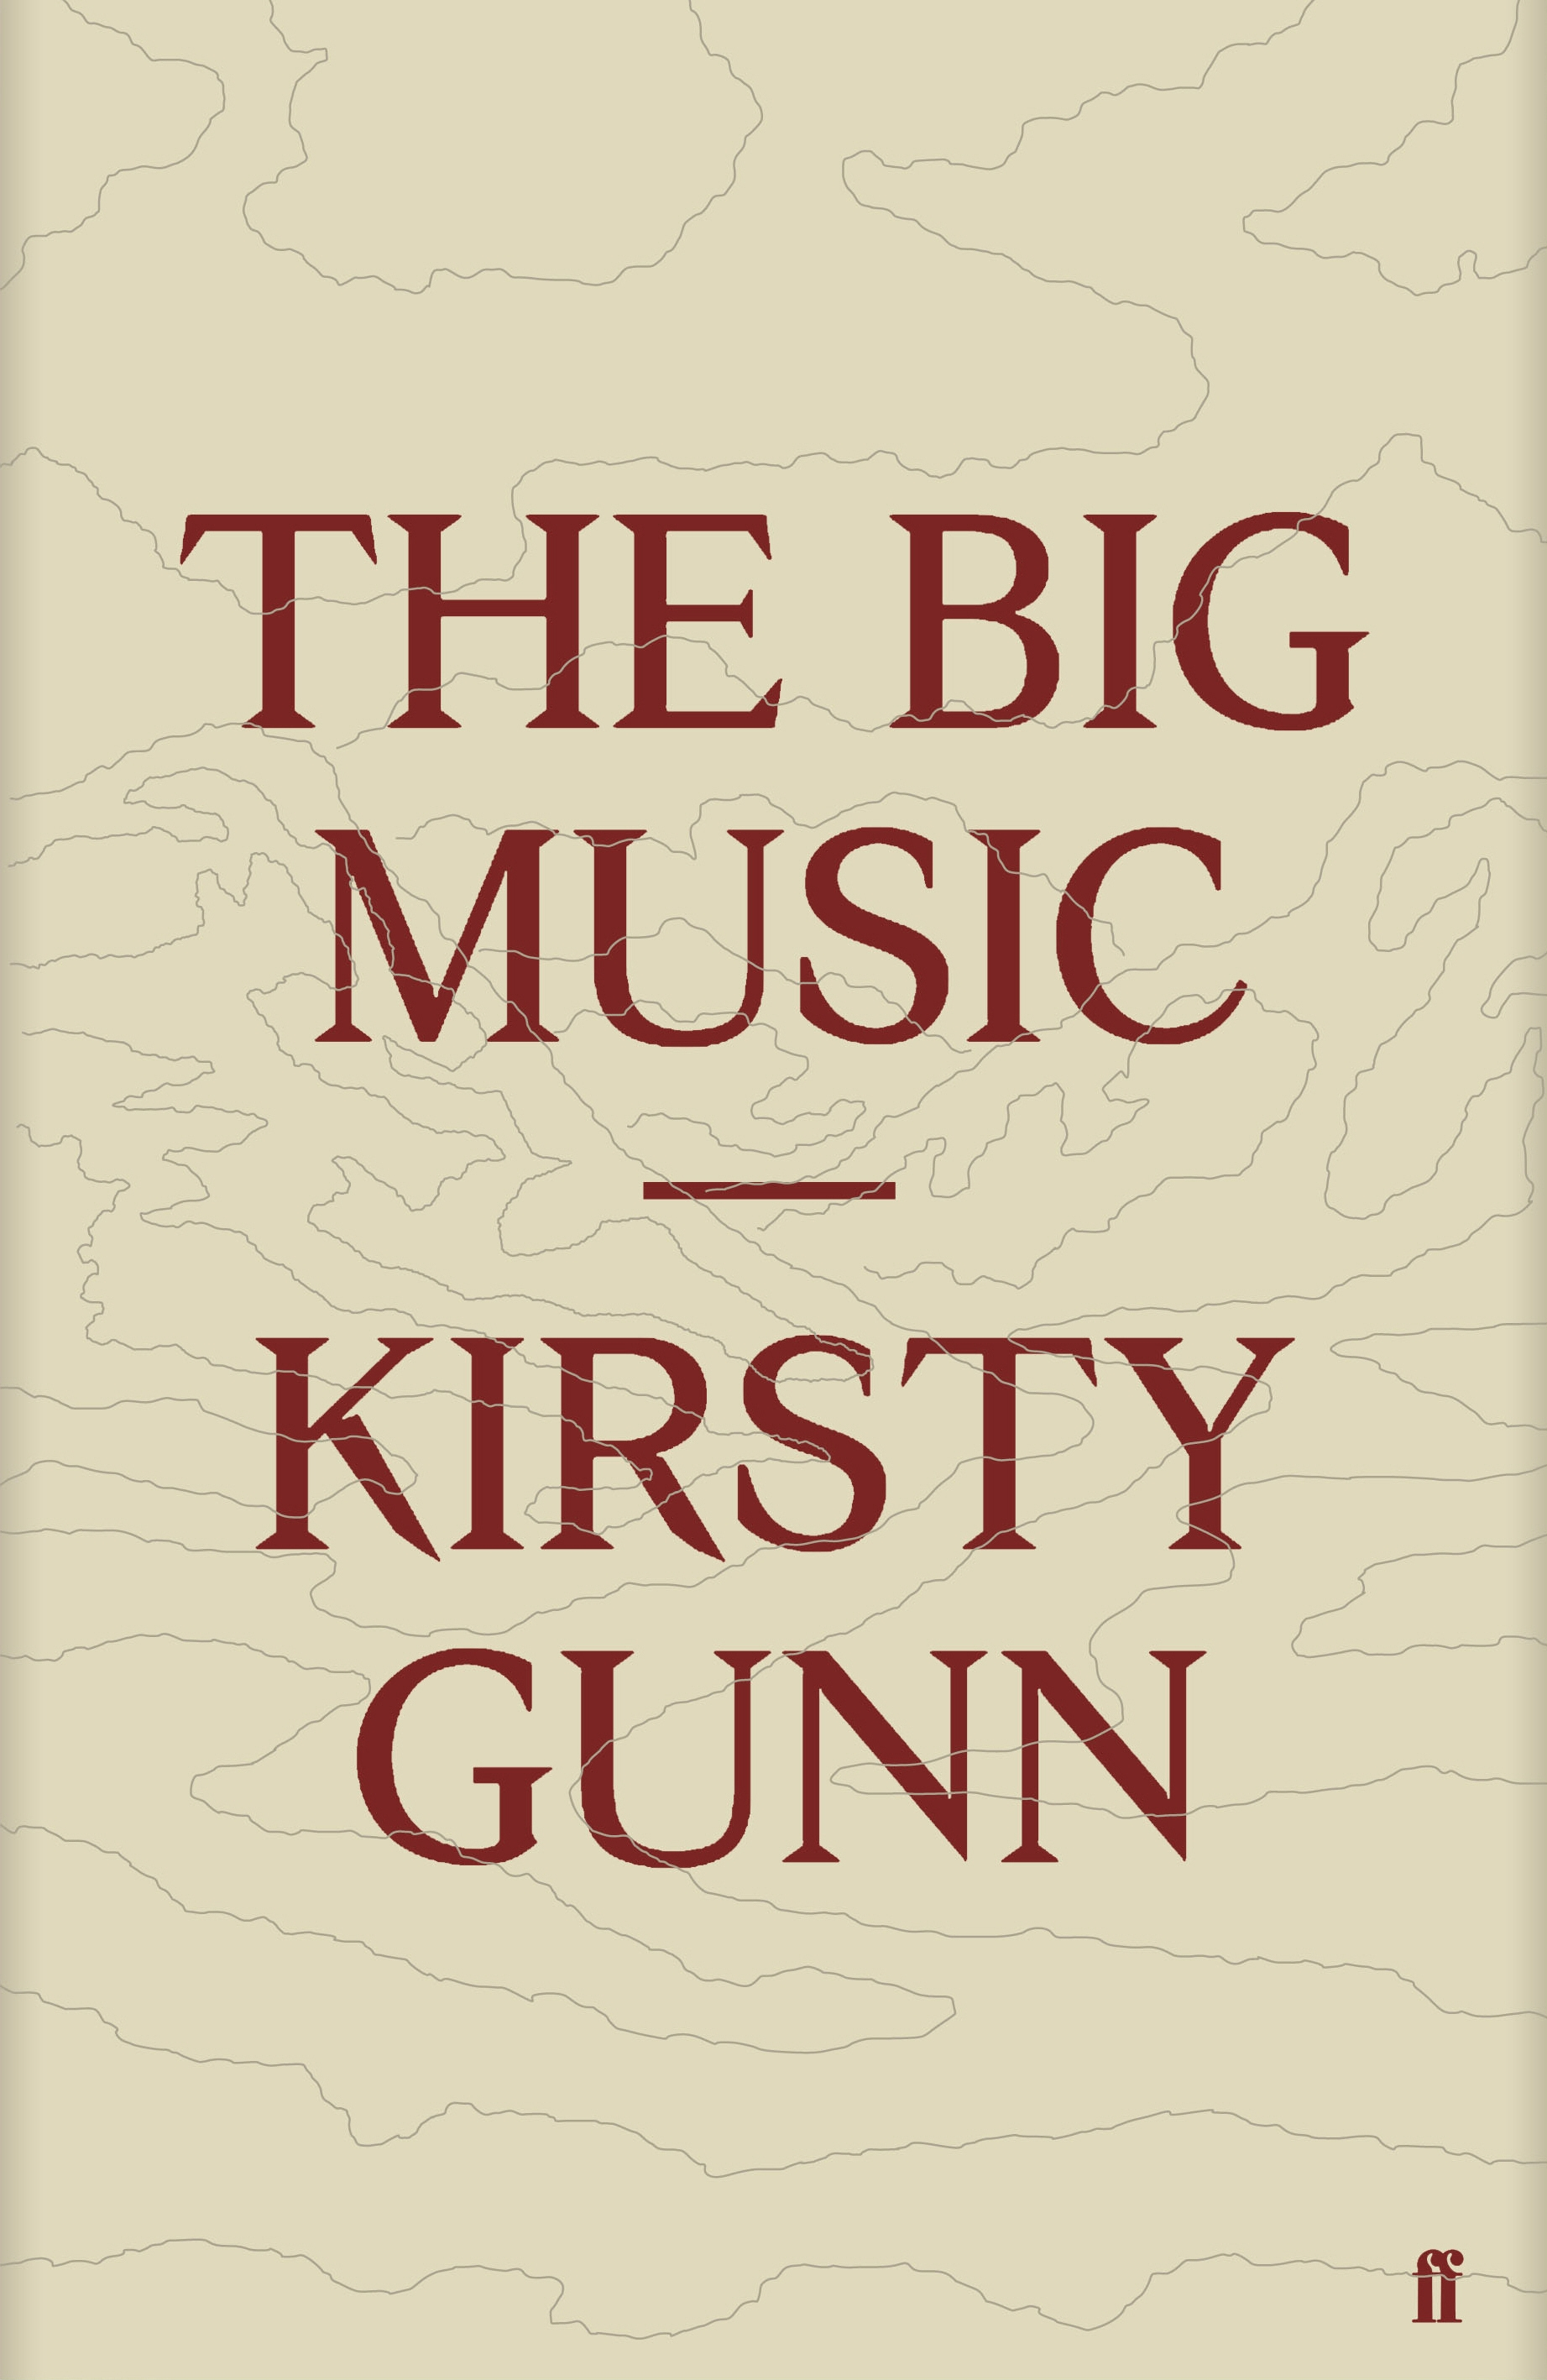 Featured image of Vivien Williams in conversation with Kirsty Gunn on The Big Music at University of Dundee